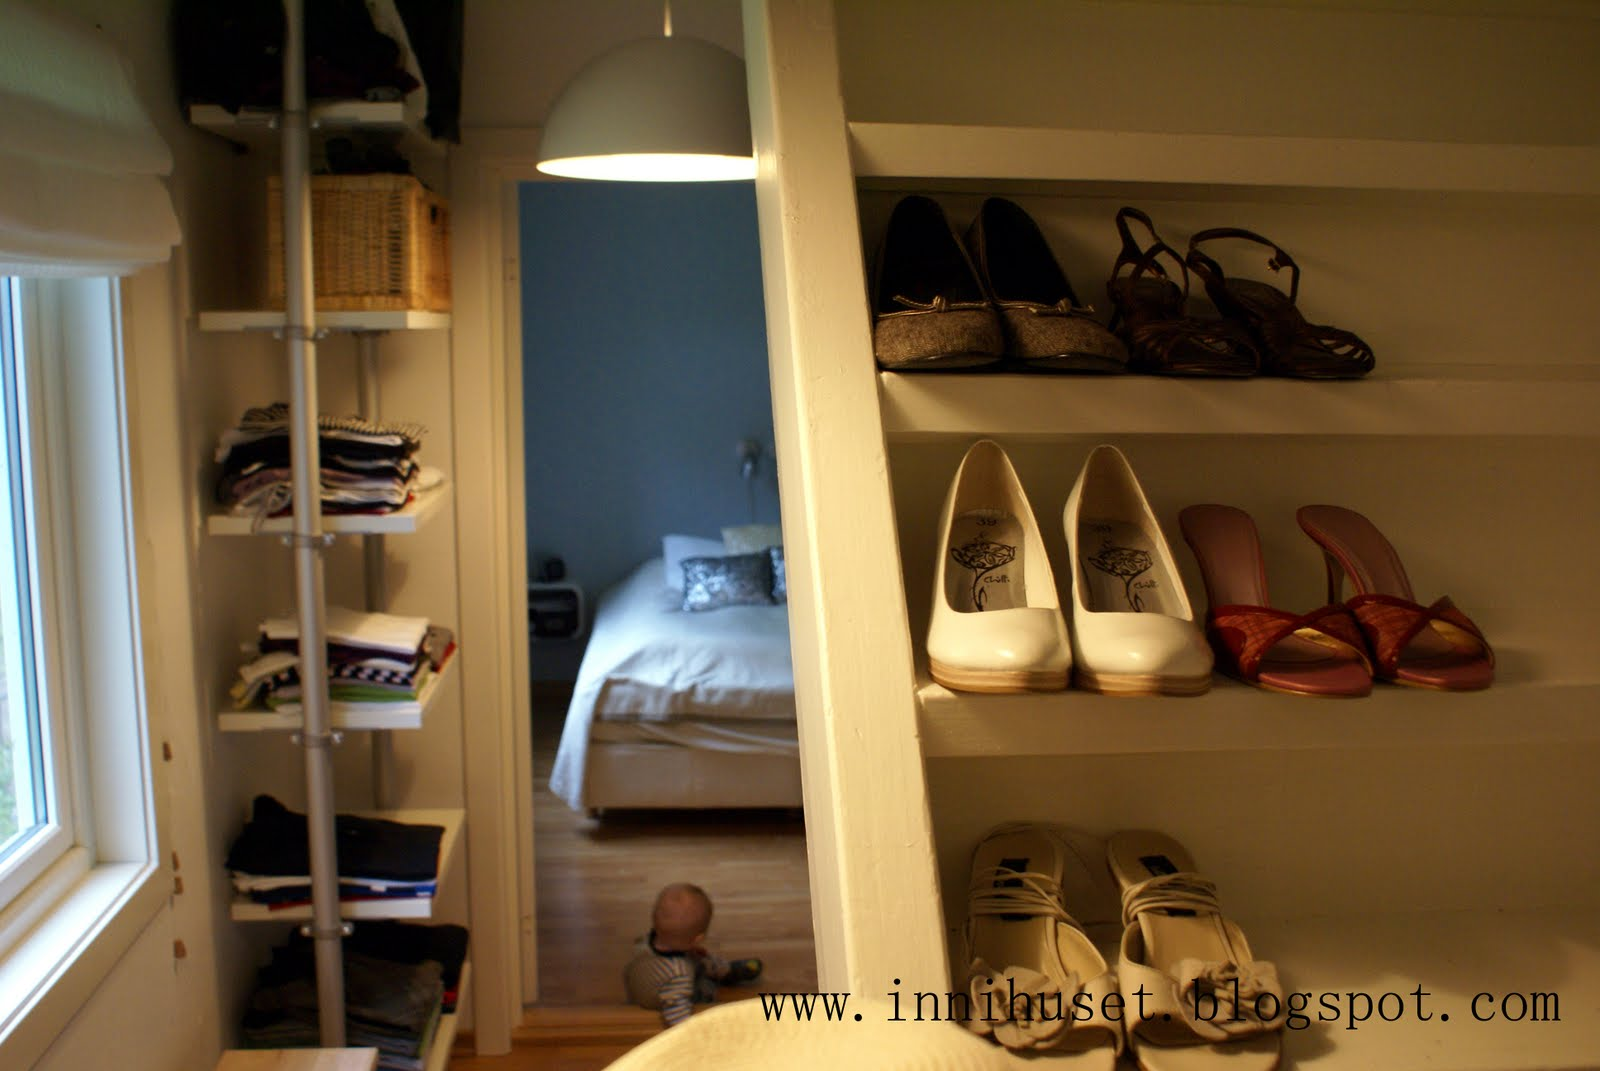 Photo Walk-in Garde-robe Innihuset Walk In Garderobe Del 2